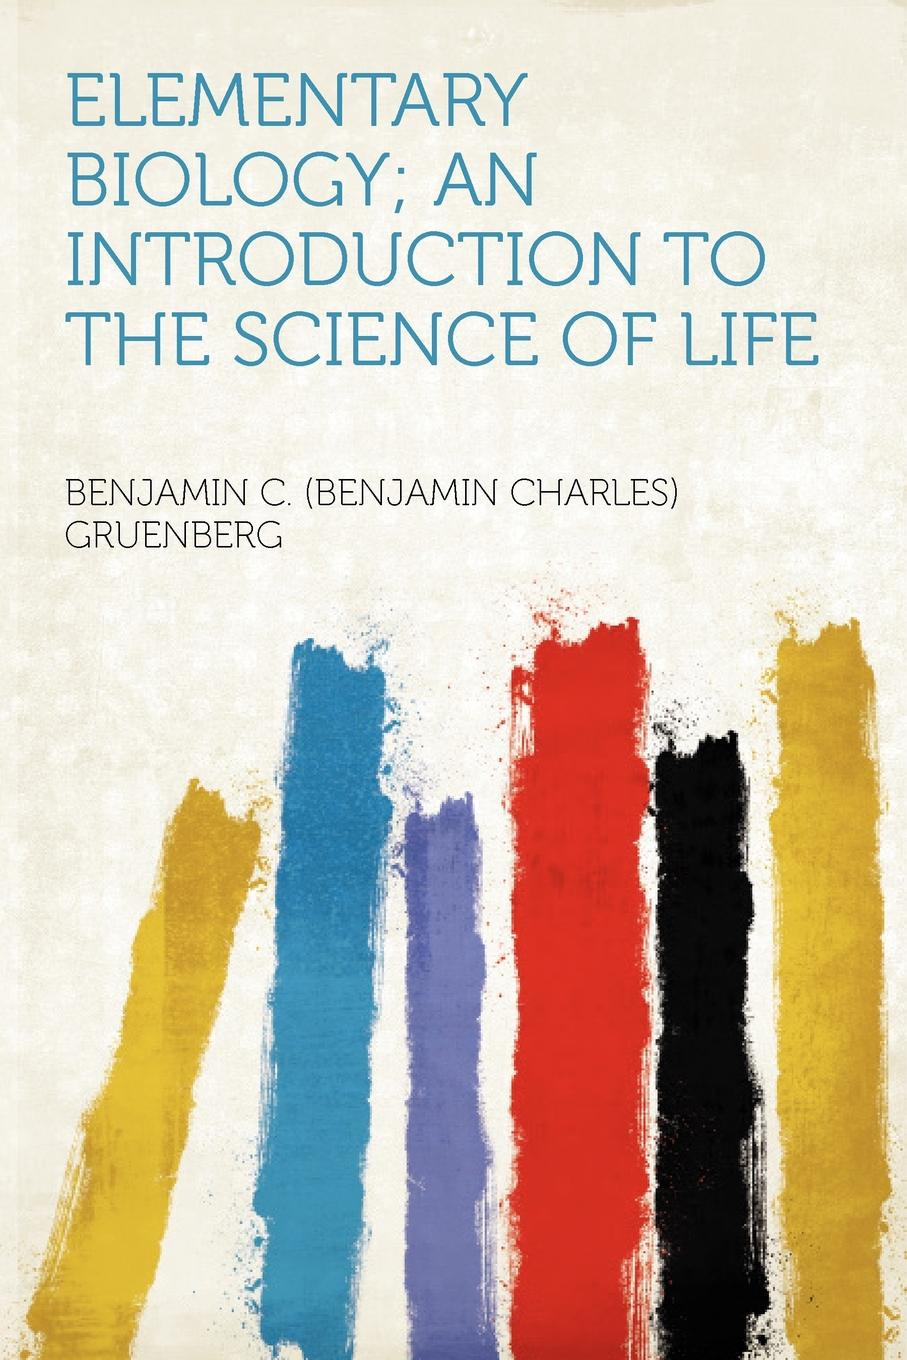 Elementary Biology; an Introduction to the Science of Life.